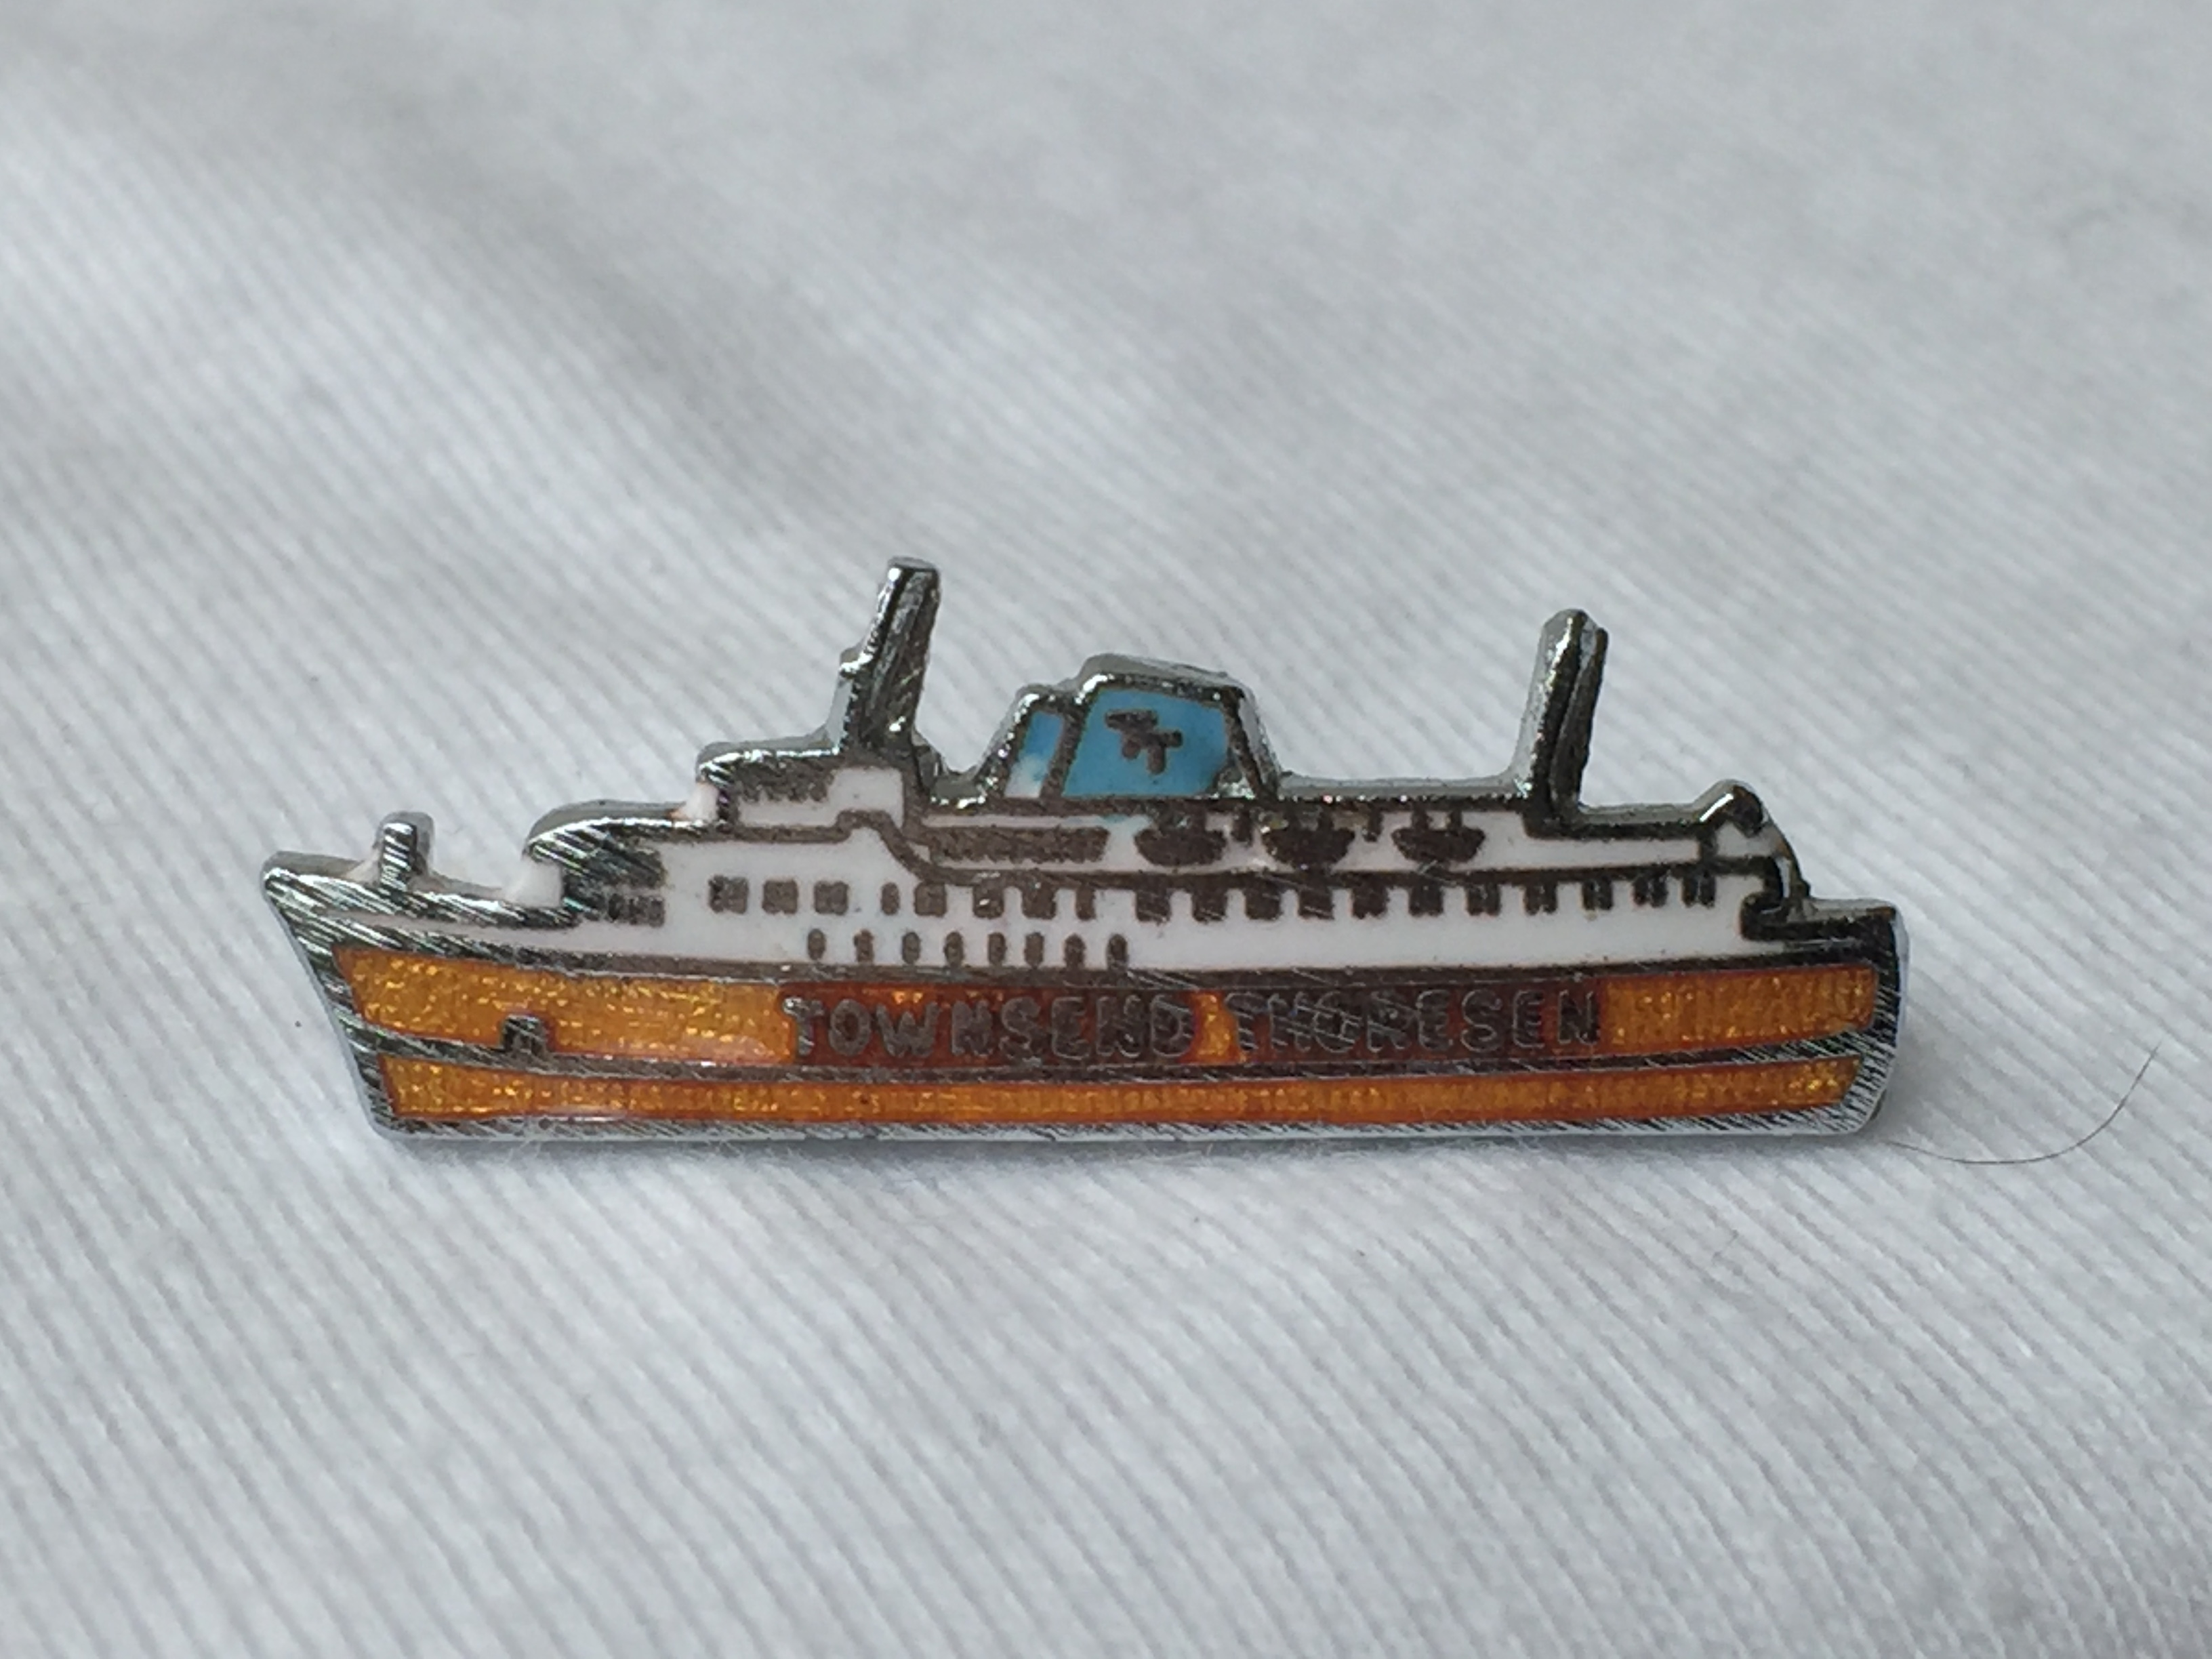 SHIP SHAPE LAPEL PIN FROM THE FERRY CROSSING SERVICE COMPANY TOWNSEND THORESEN